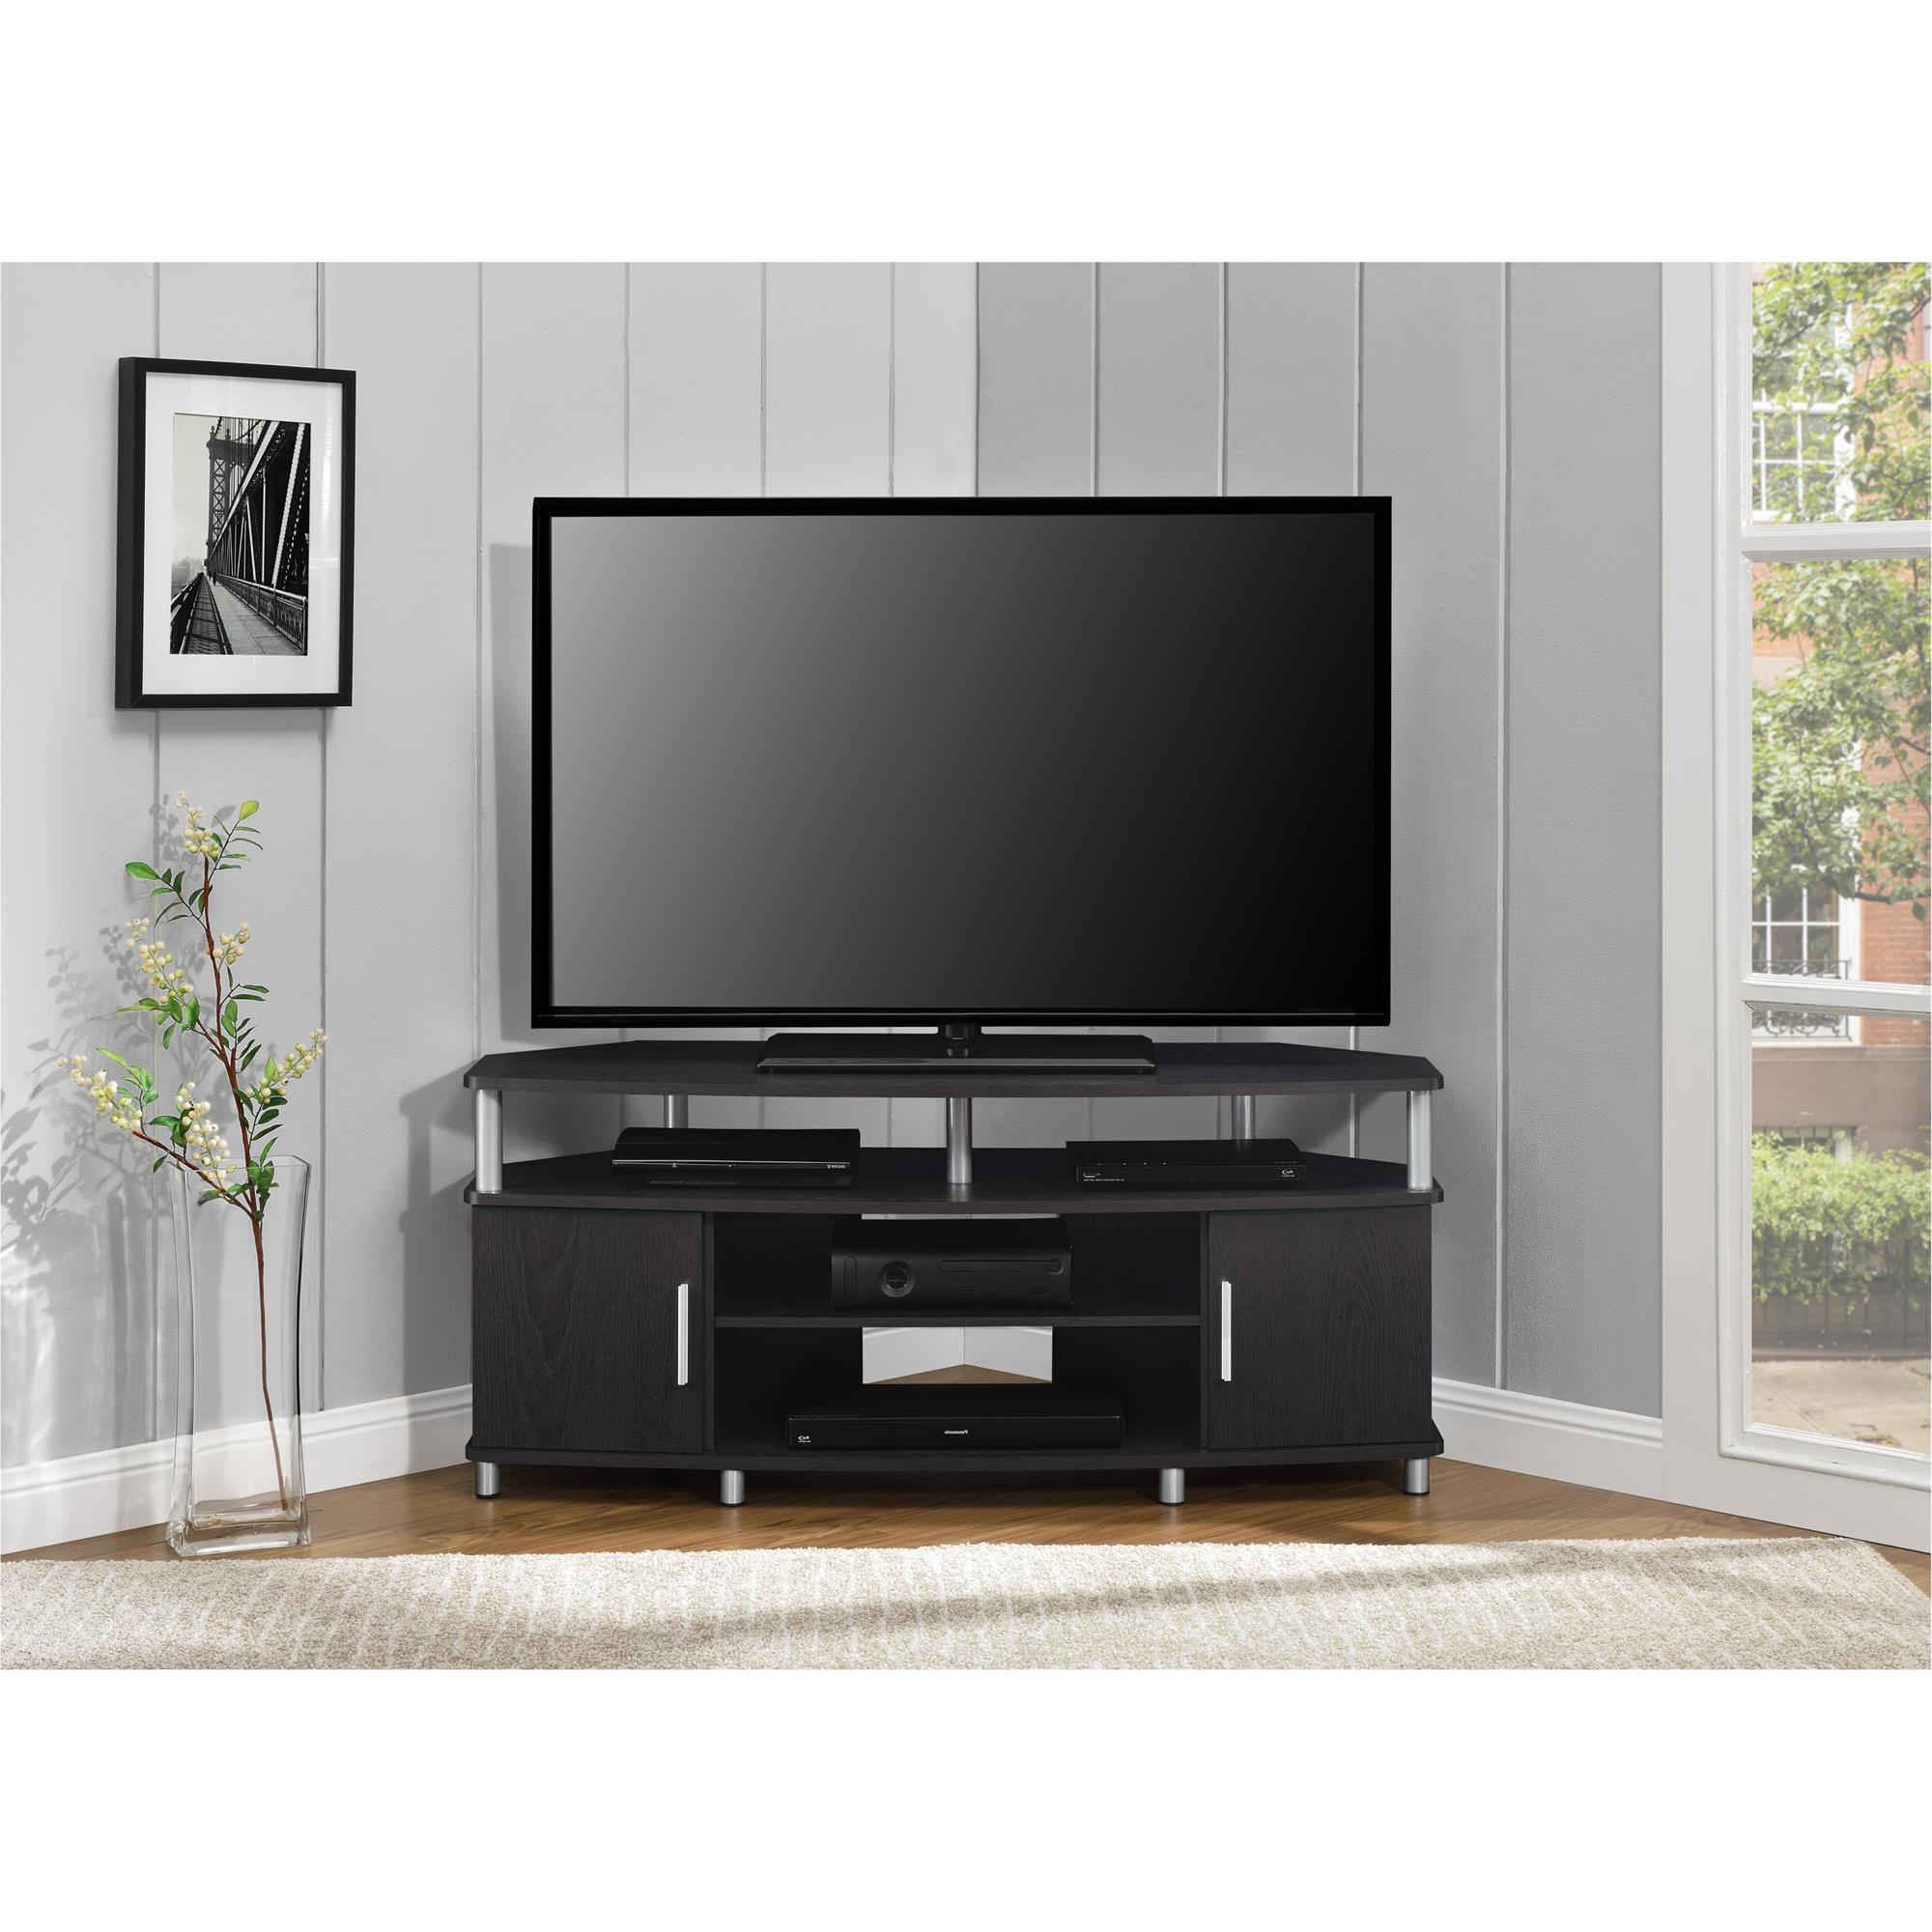 """Ameriwood Home Carson Corner Tv Stand For Tvs Up To 50 With Corner Tv Stands For Tvs Up To 43"""" Black (View 16 of 20)"""